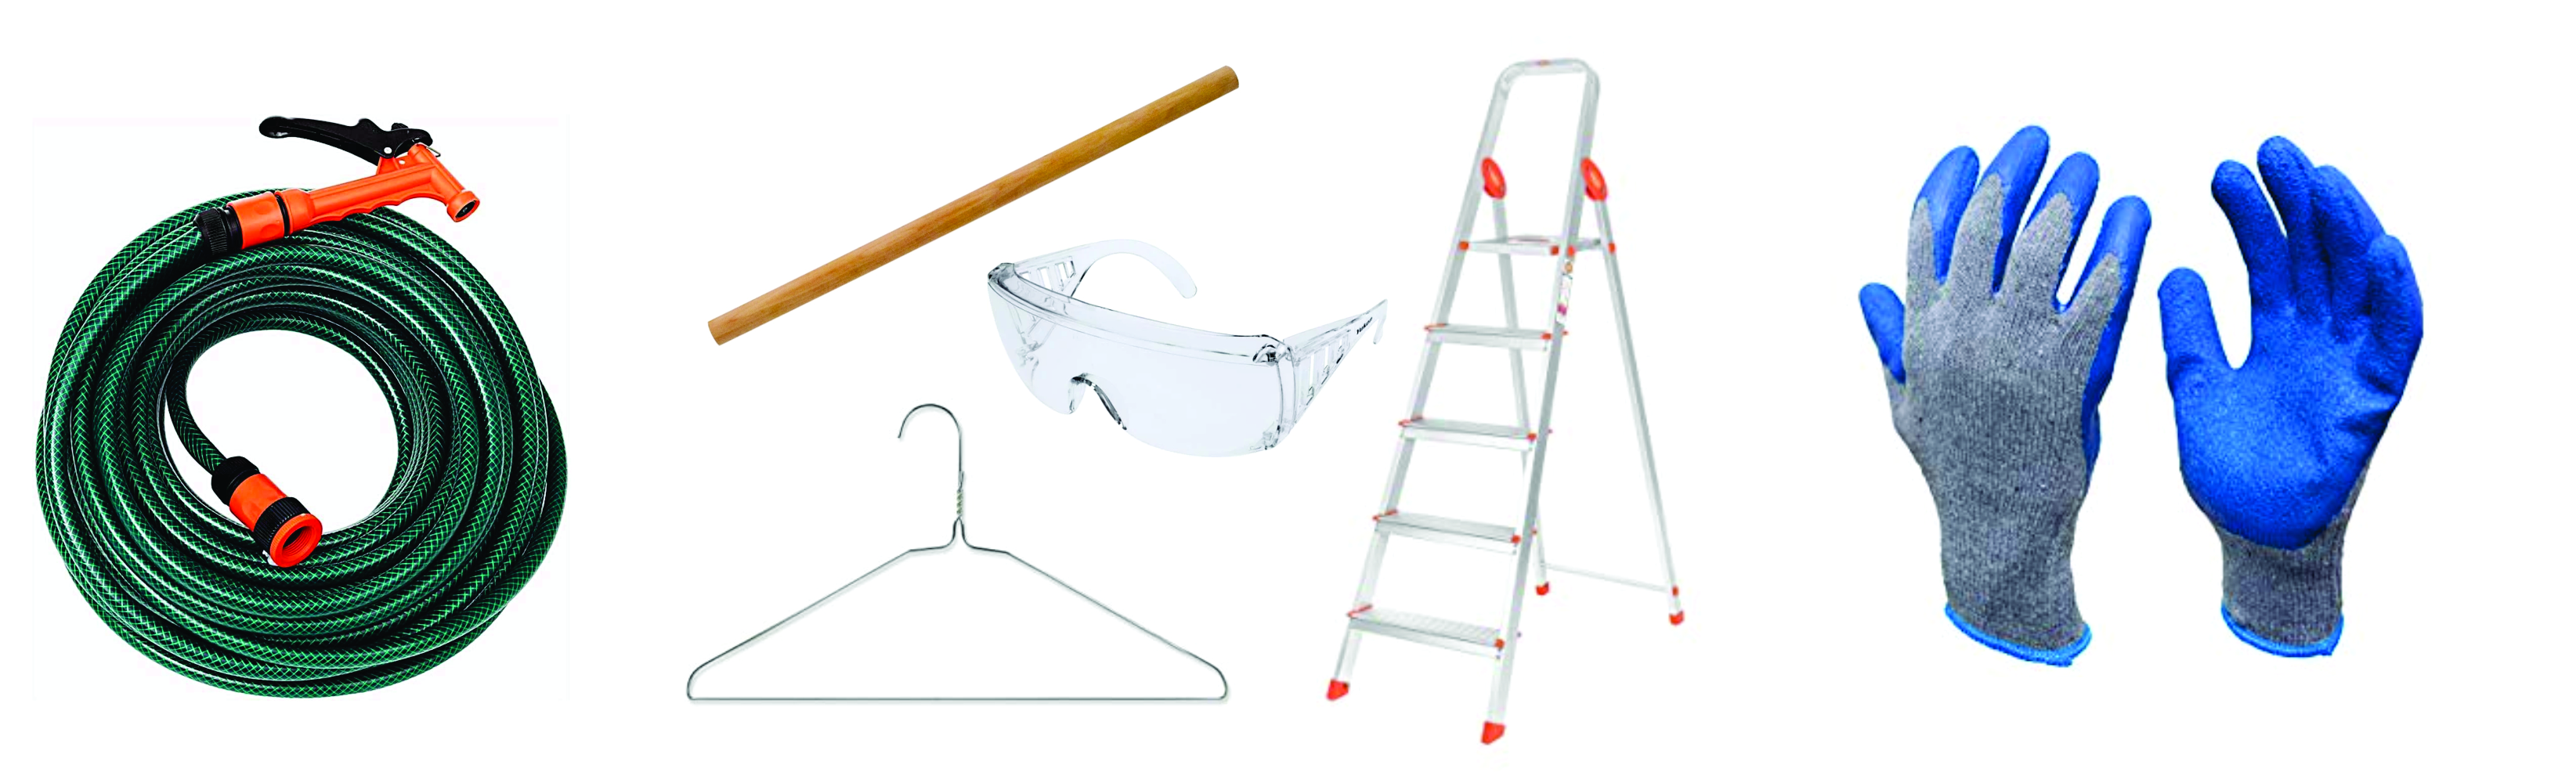 Examples of required equipment